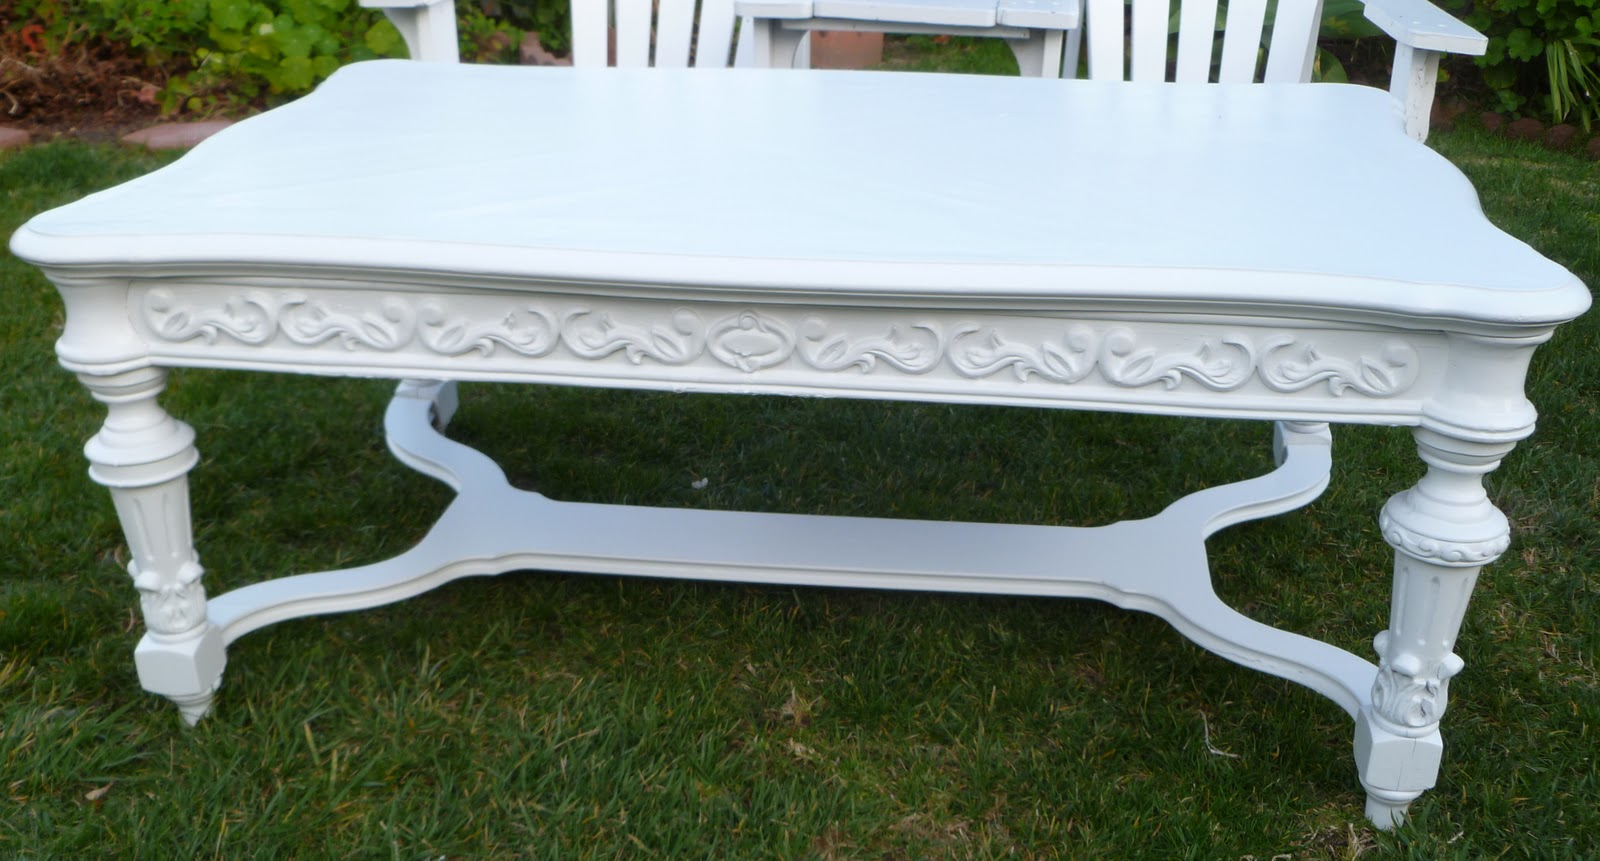 Shabby to chic treasures white ornate shabby chic coffee table white ornate shabby chic coffee table geotapseo Gallery